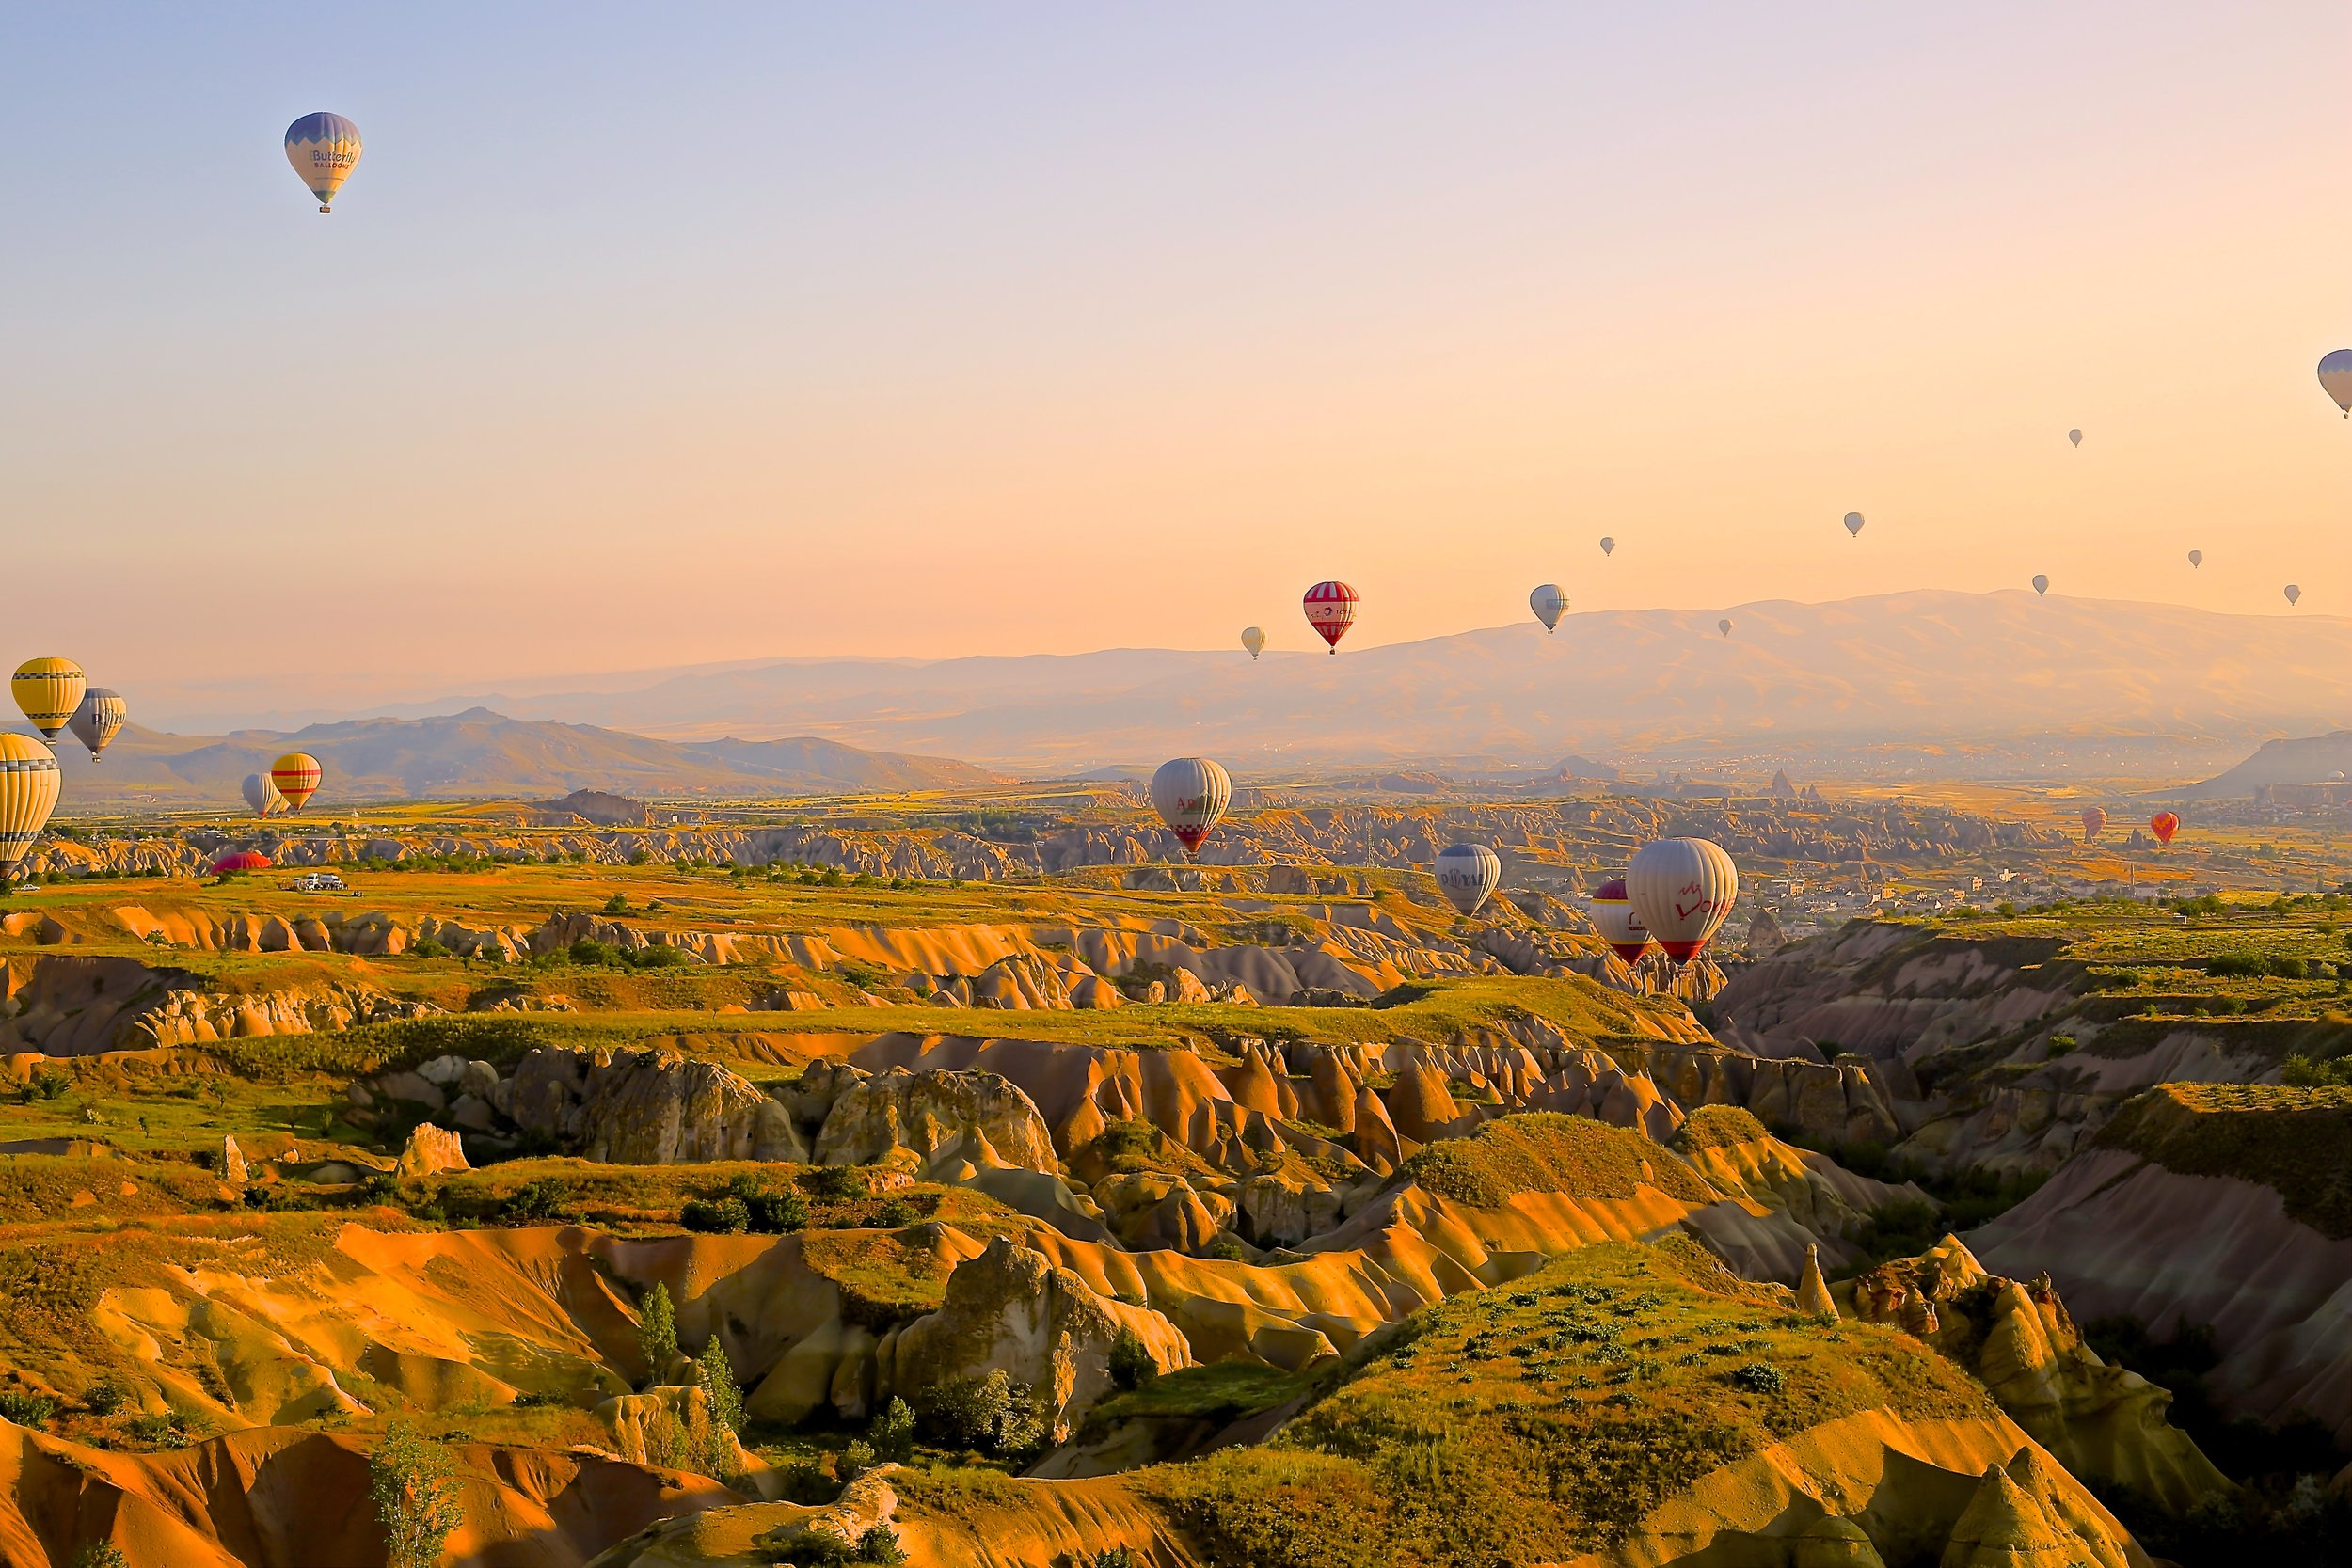 View of Göreme from a hot air balloon